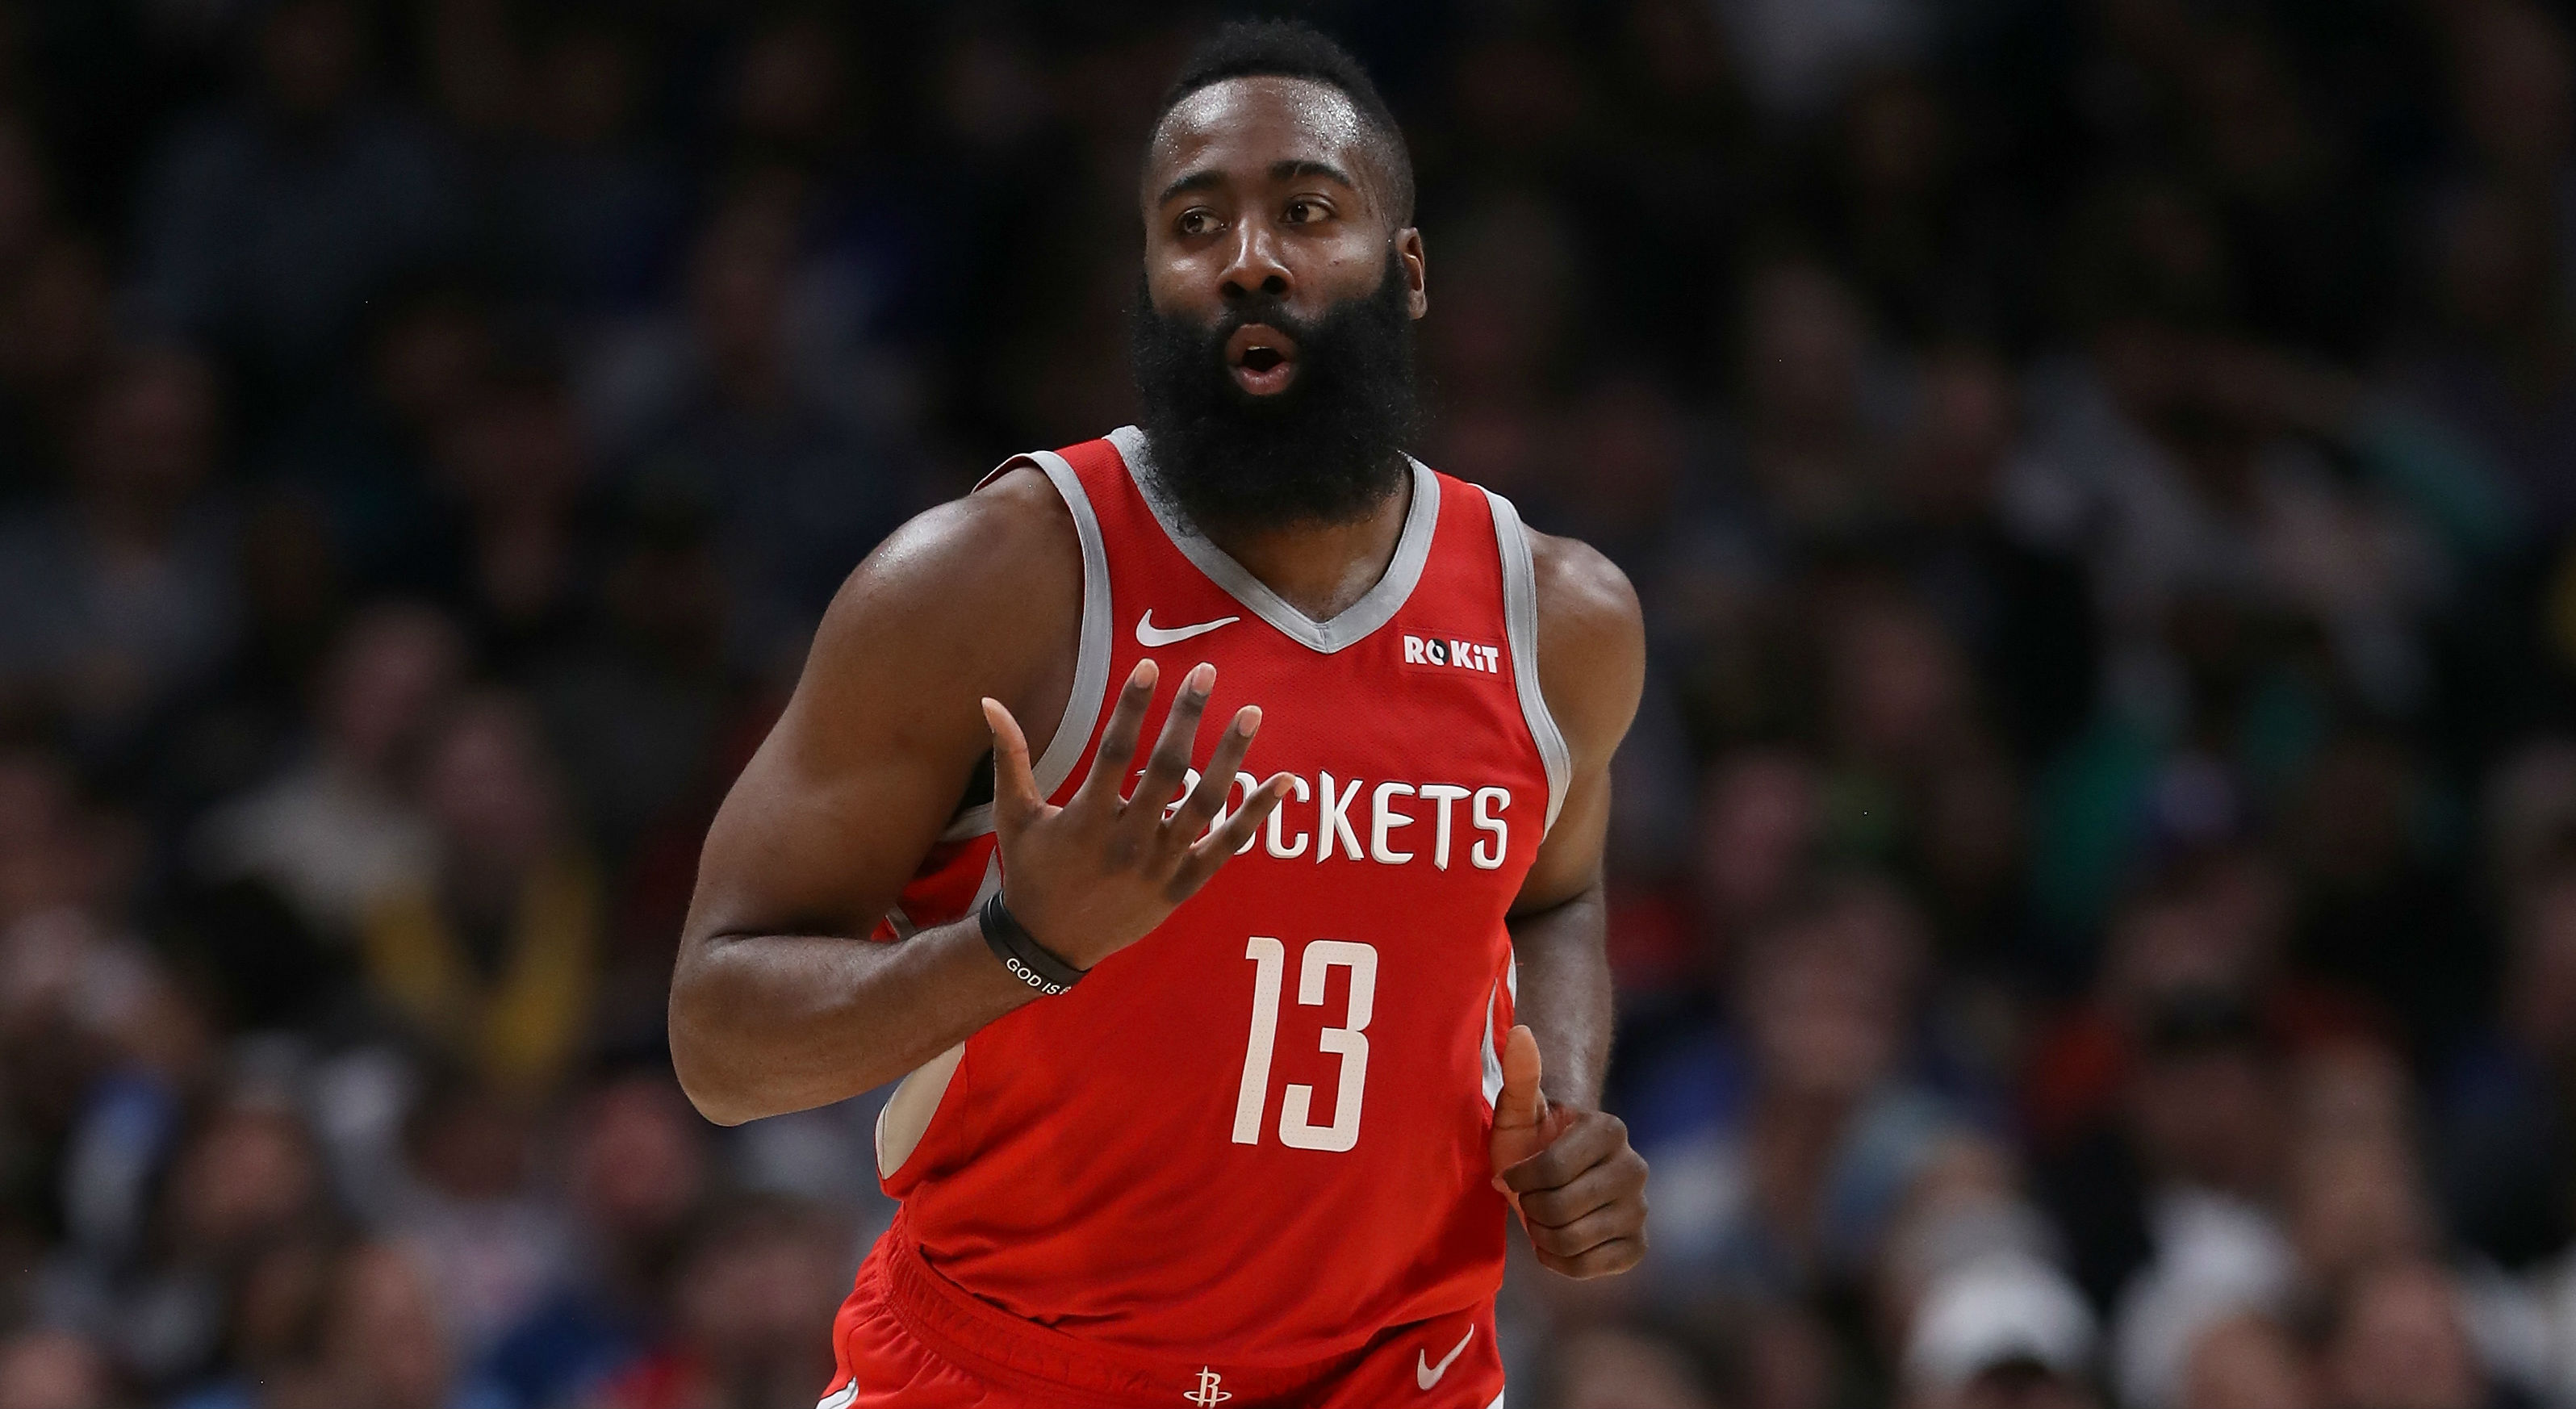 James Harden Knocks Down Game Winning 3-Pointer over Warriors